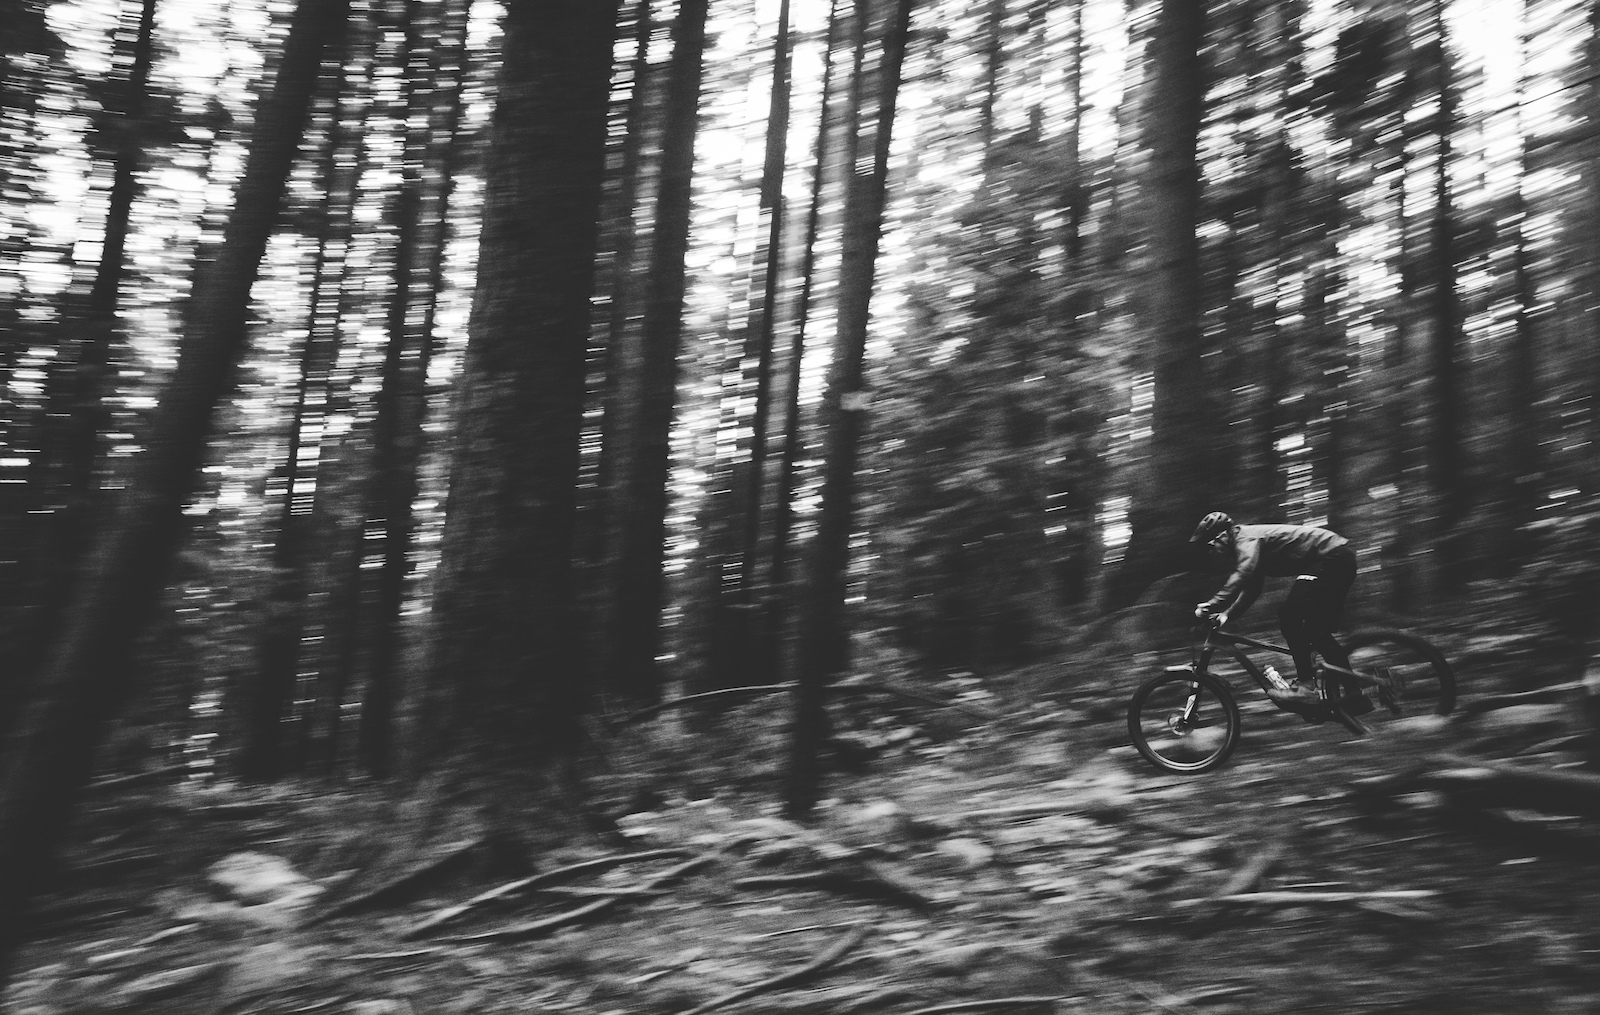 Images by Adrian Marcoux for SRAM s Riding for real with Yoann Barelli and Josh Carlson article.